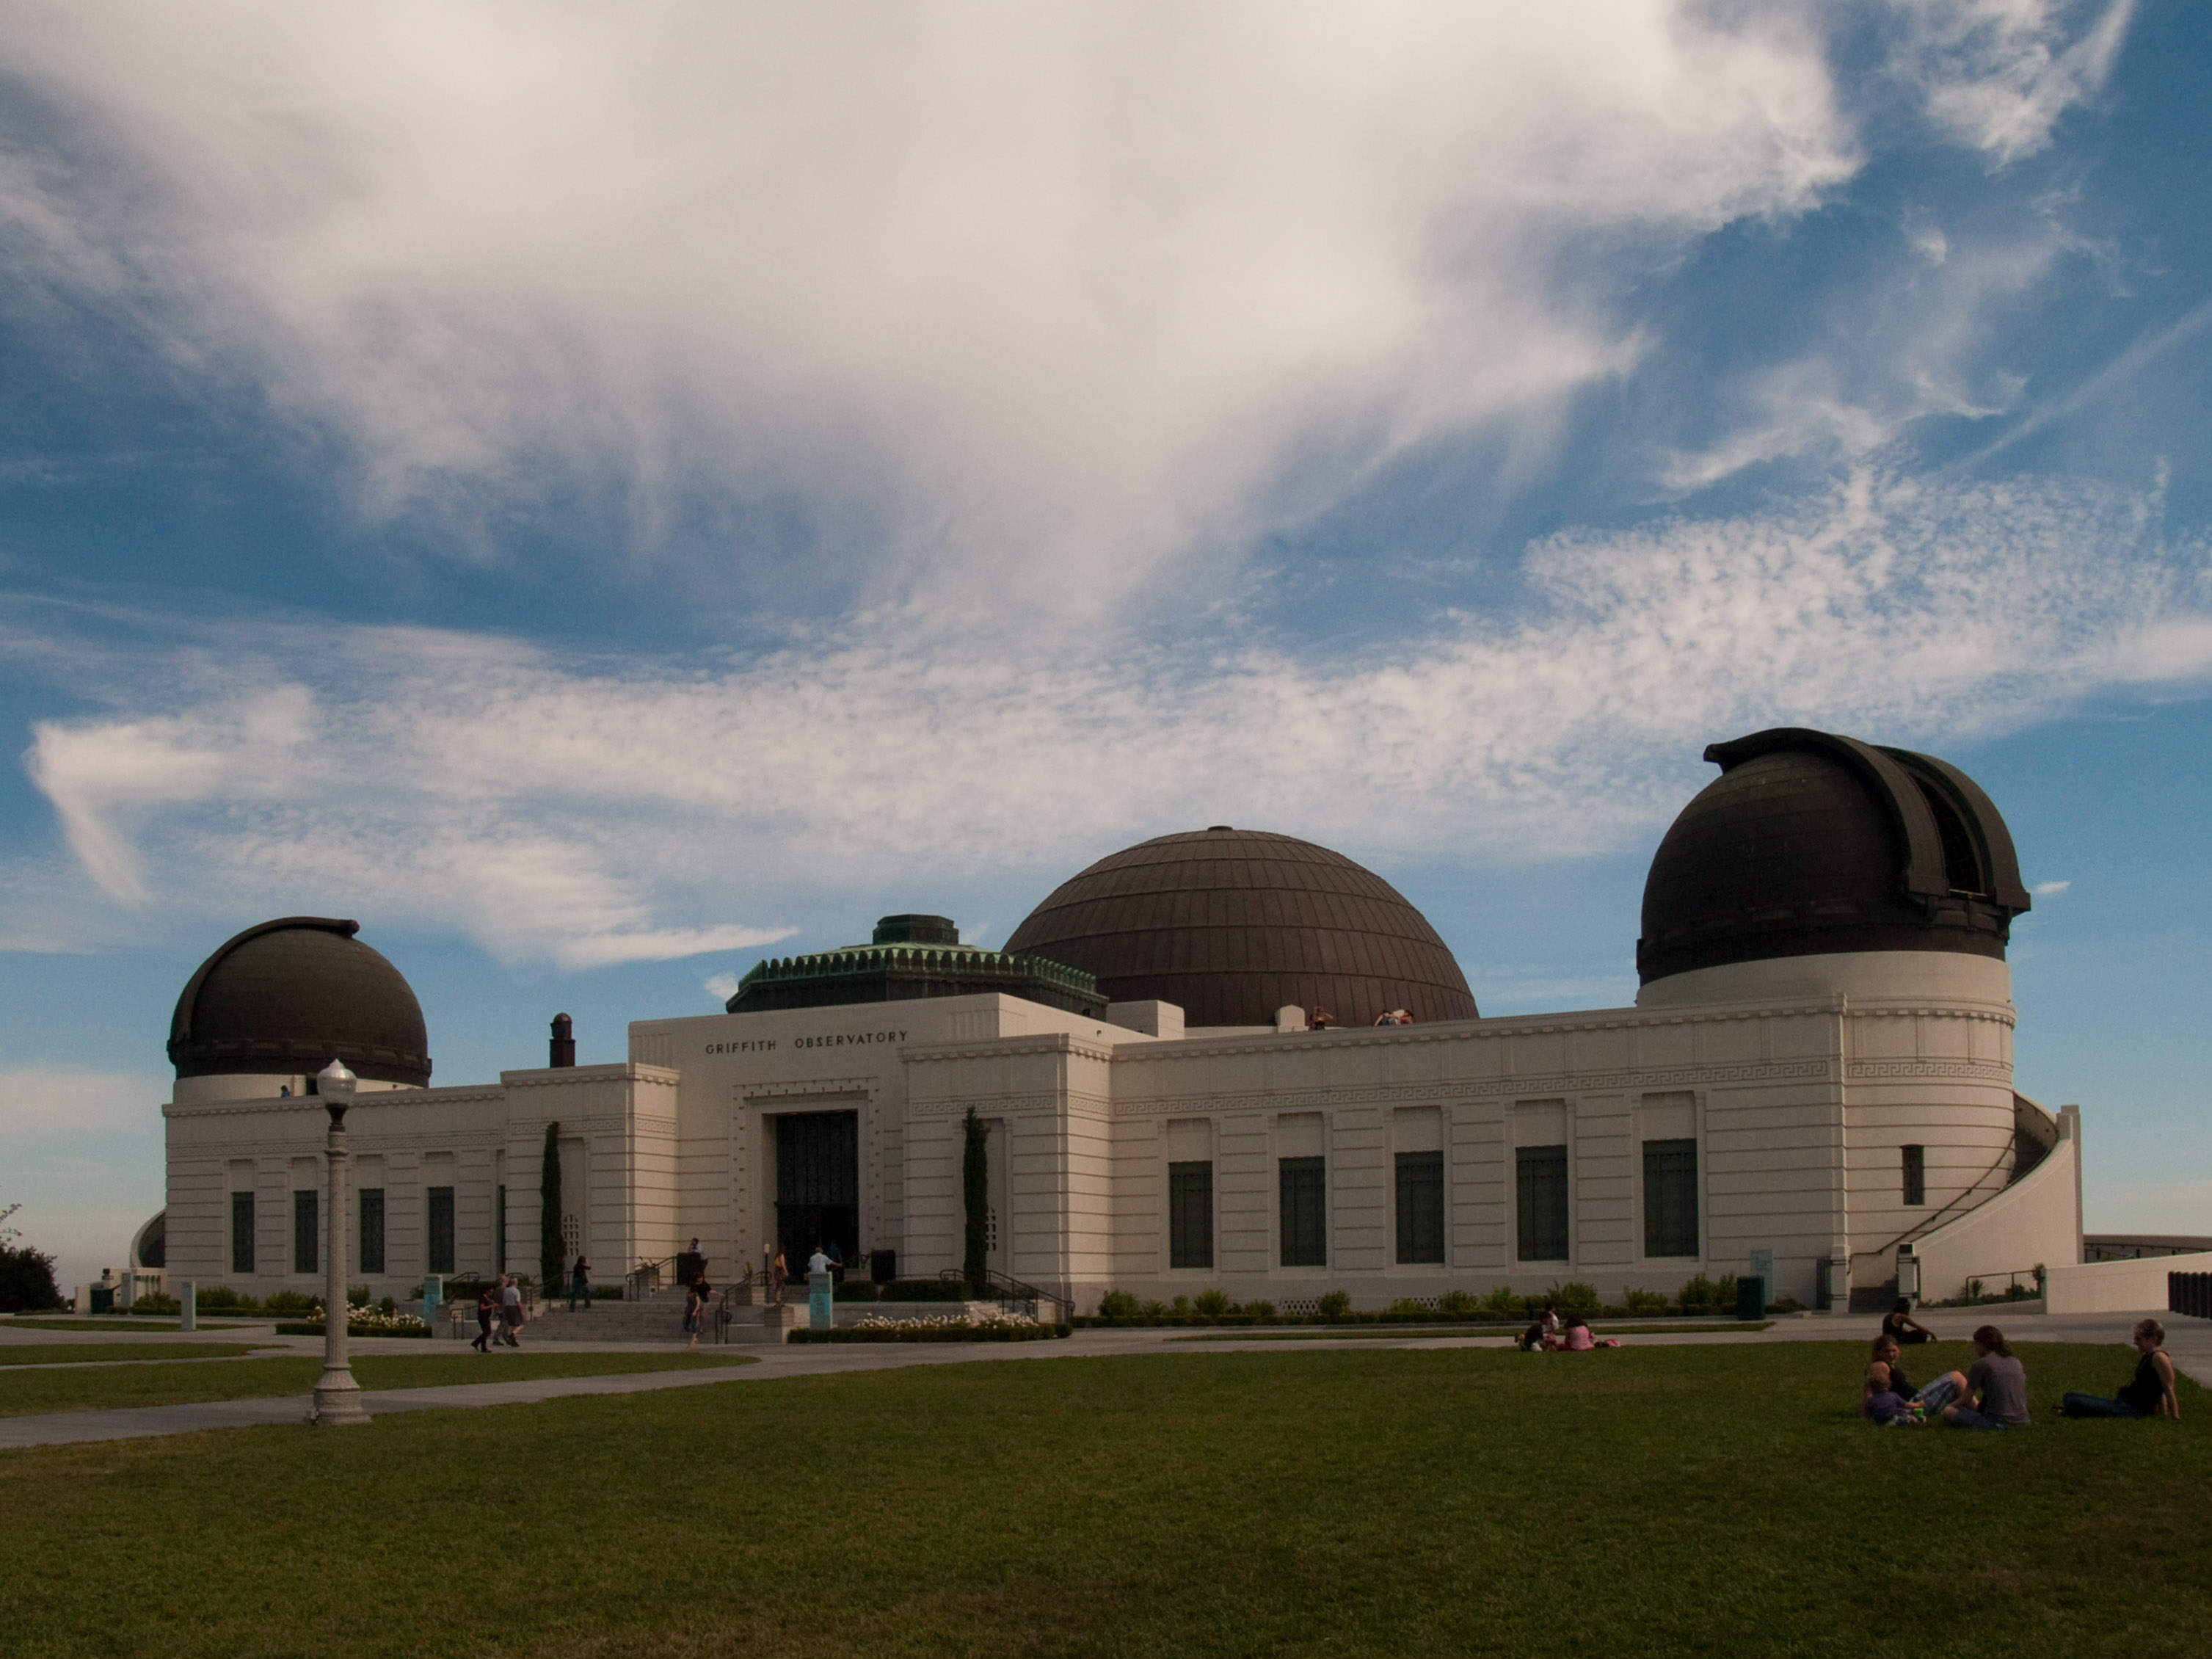 Archikey.com | Buildings | Griffith Observatory